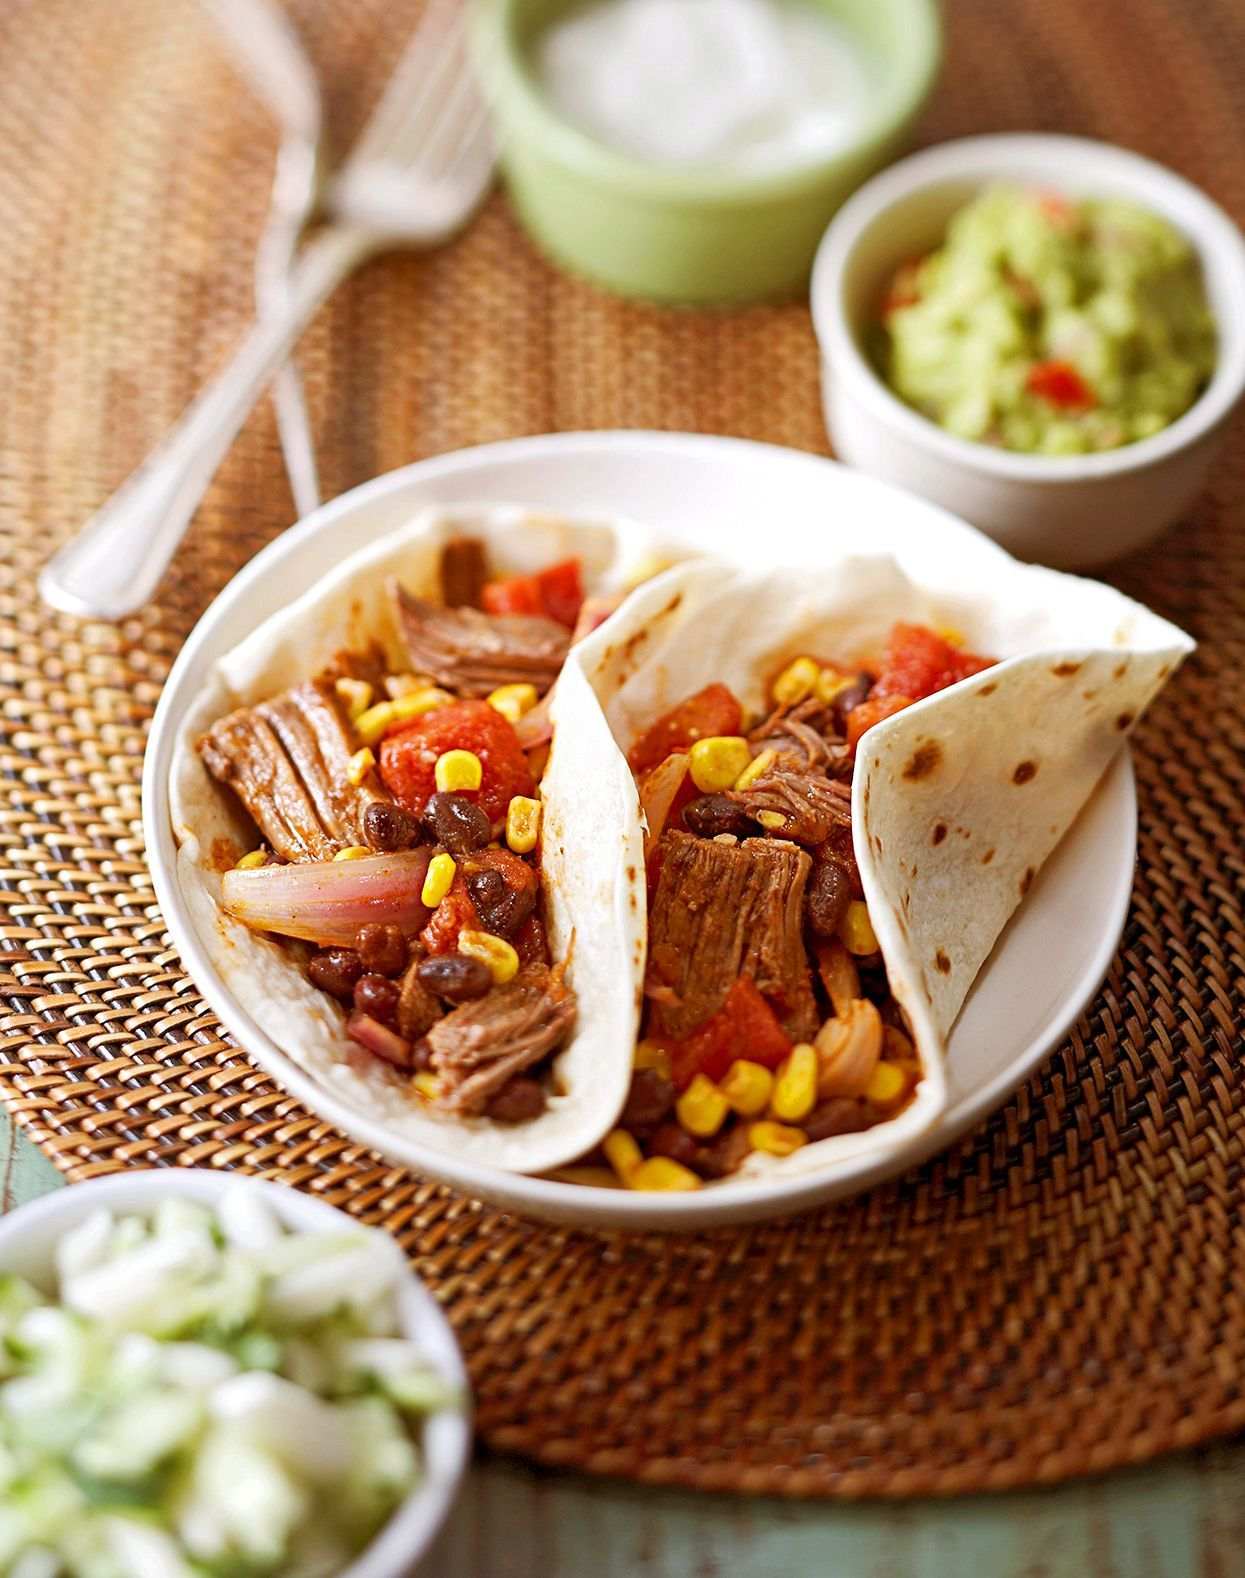 15 Fajita Ideas to Add Sizzle to Your Supper #beeffajitarecipe Fajita Recipes to Spice Up Your Dinner Routine #steakfajitarecipe